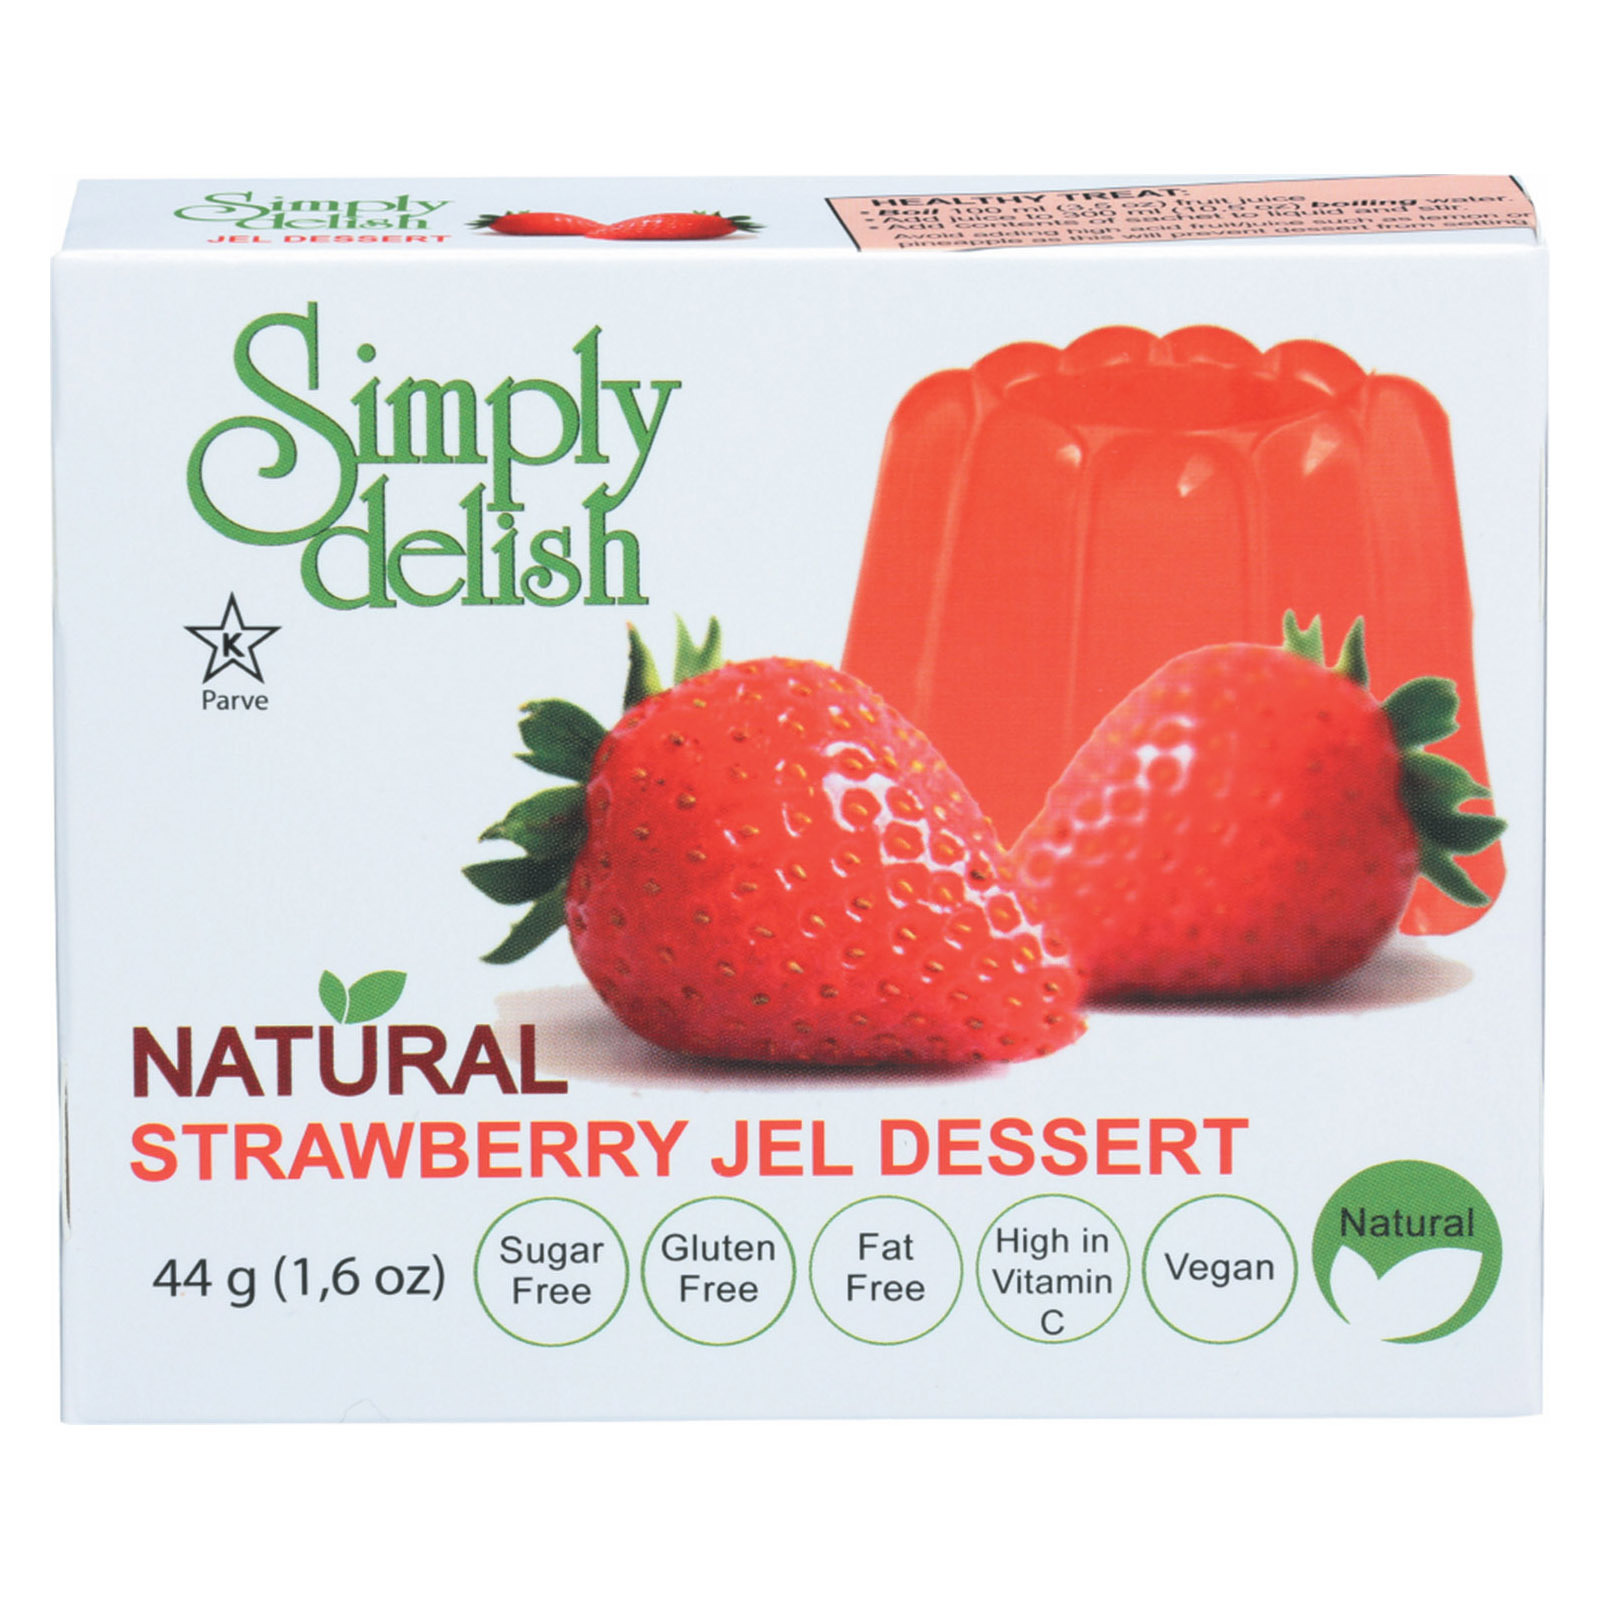 Simply Delish Jel Dessert - Strawberry - Case of 6 - 1.6 oz.